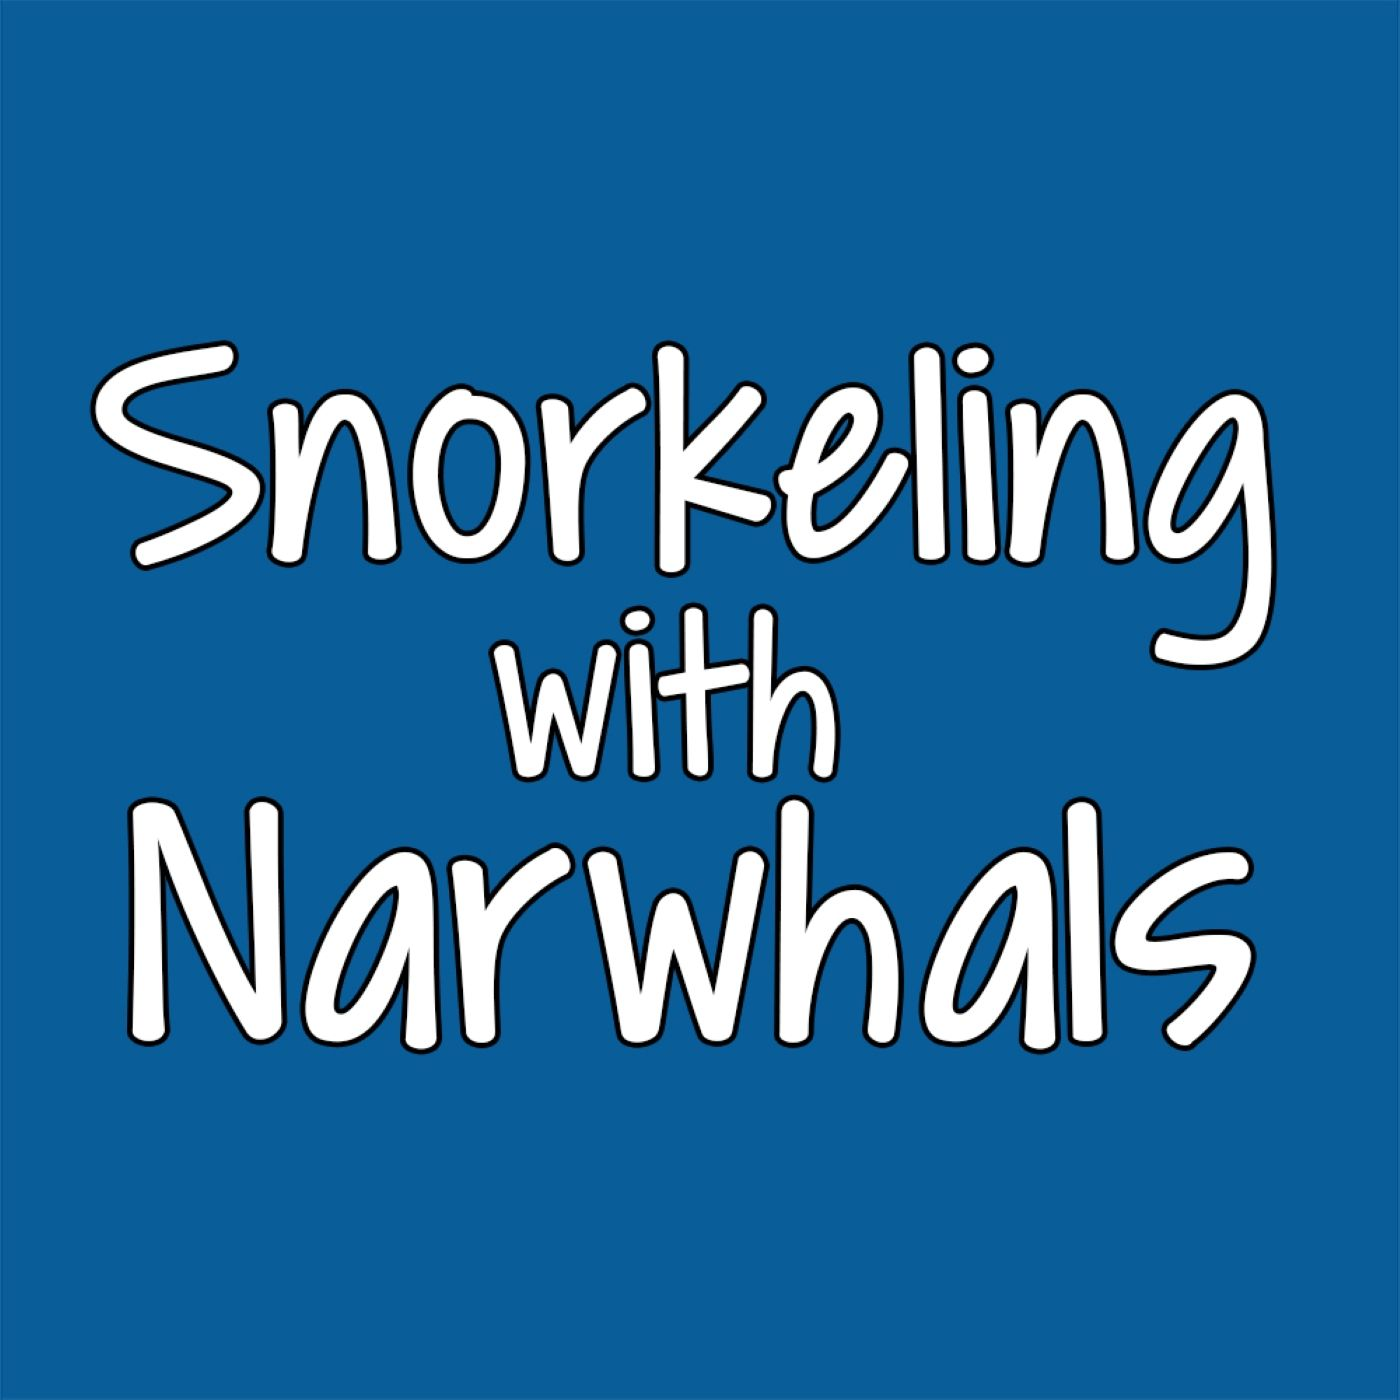 Snorkeling With Narwhals